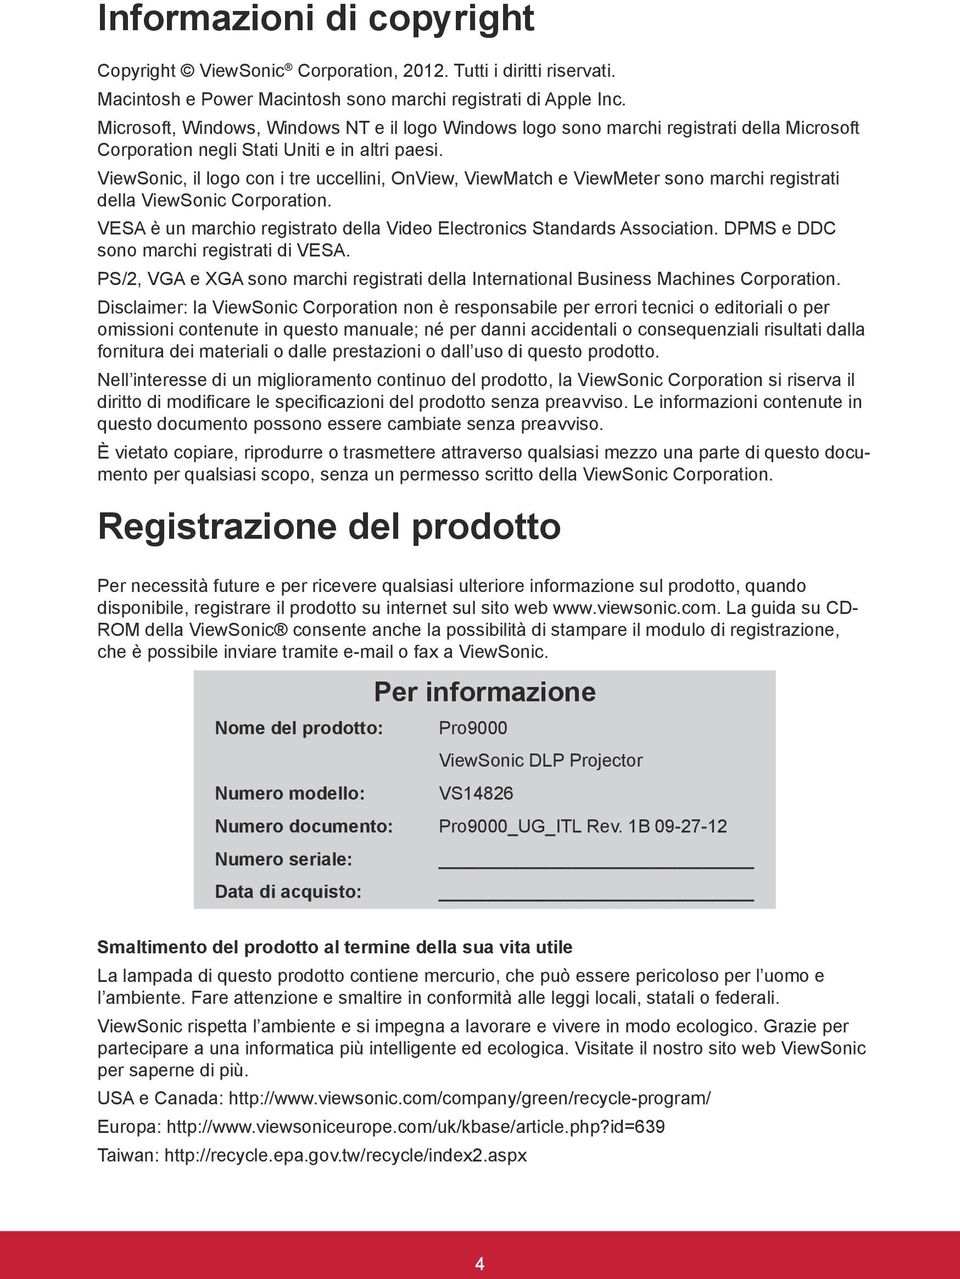 ViewSonic, il logo con i tre uccellini, OnView, ViewMatch e ViewMeter sono marchi registrati della ViewSonic Corporation. VESA è un marchio registrato della Video Electronics Standards Association.